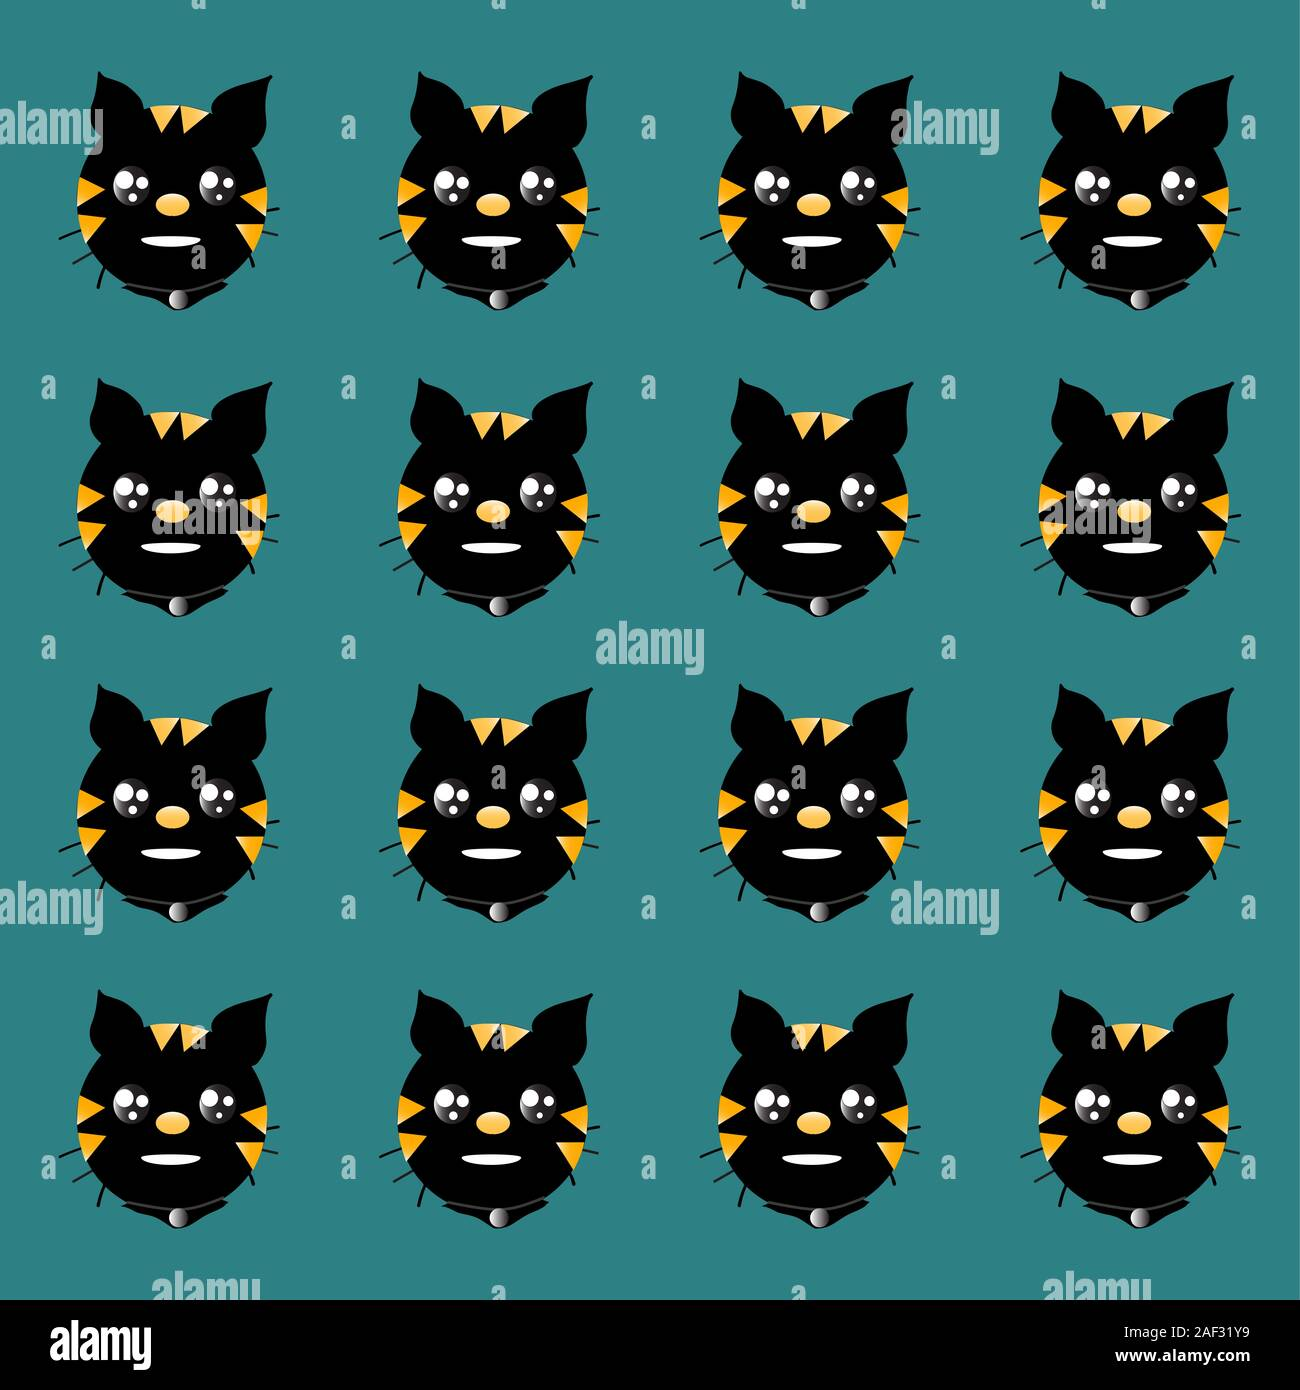 Background Wallpaper Yellow And Orange Patterned Black Cat Head Vector Design On The Background Color Tone Metallic Turquoise Stock Photo Alamy